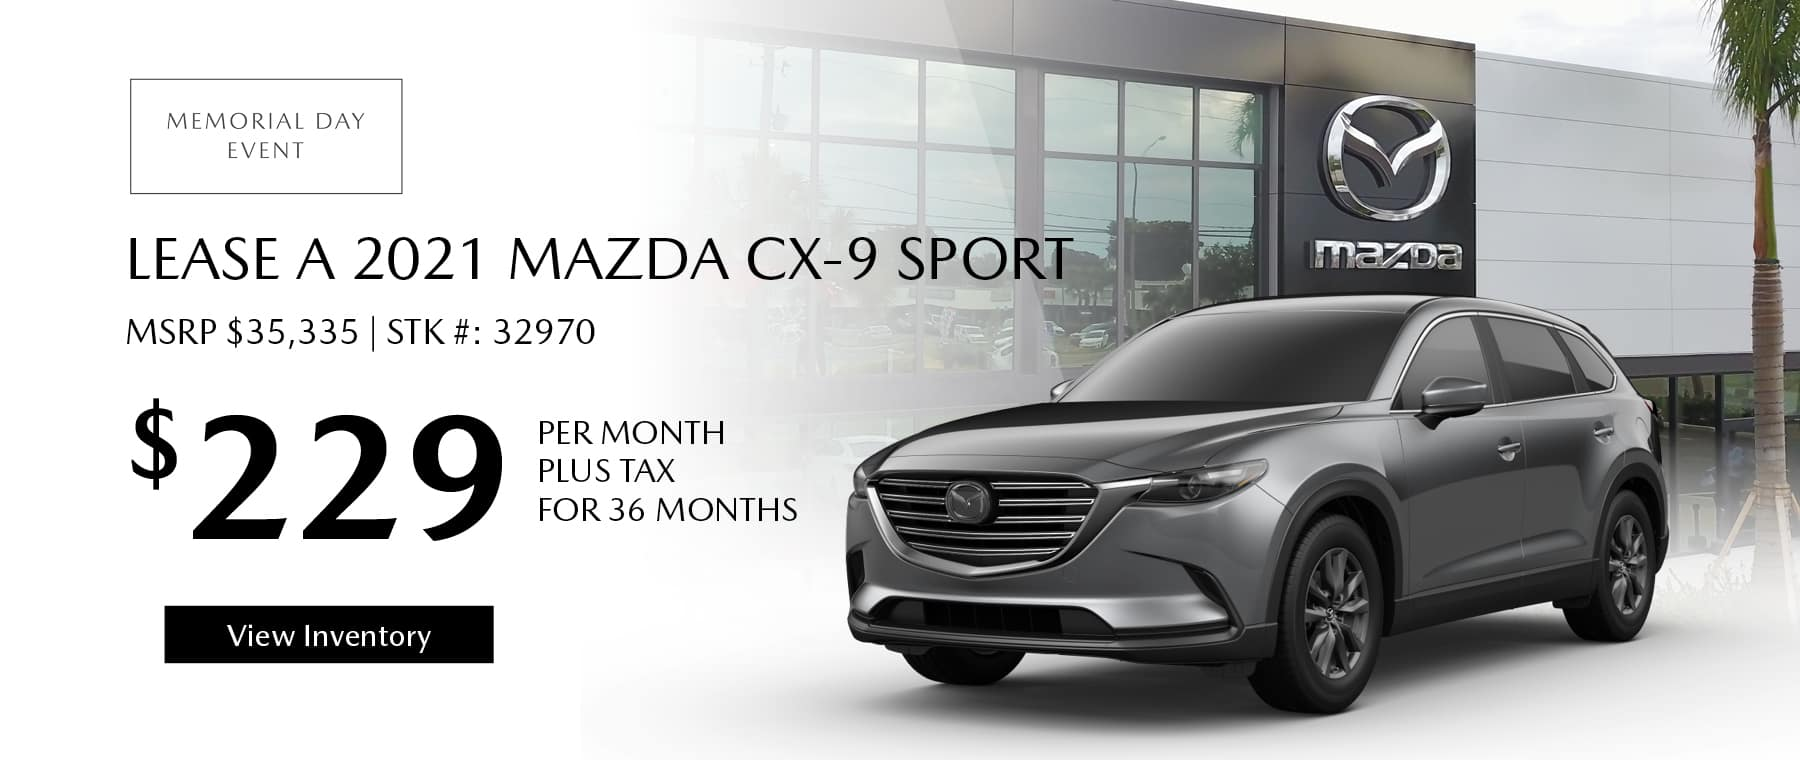 Lease the 2021 Mazda CX-9 for $229 per month, plus tax for 36 months. Click or tap here to view our inventory.